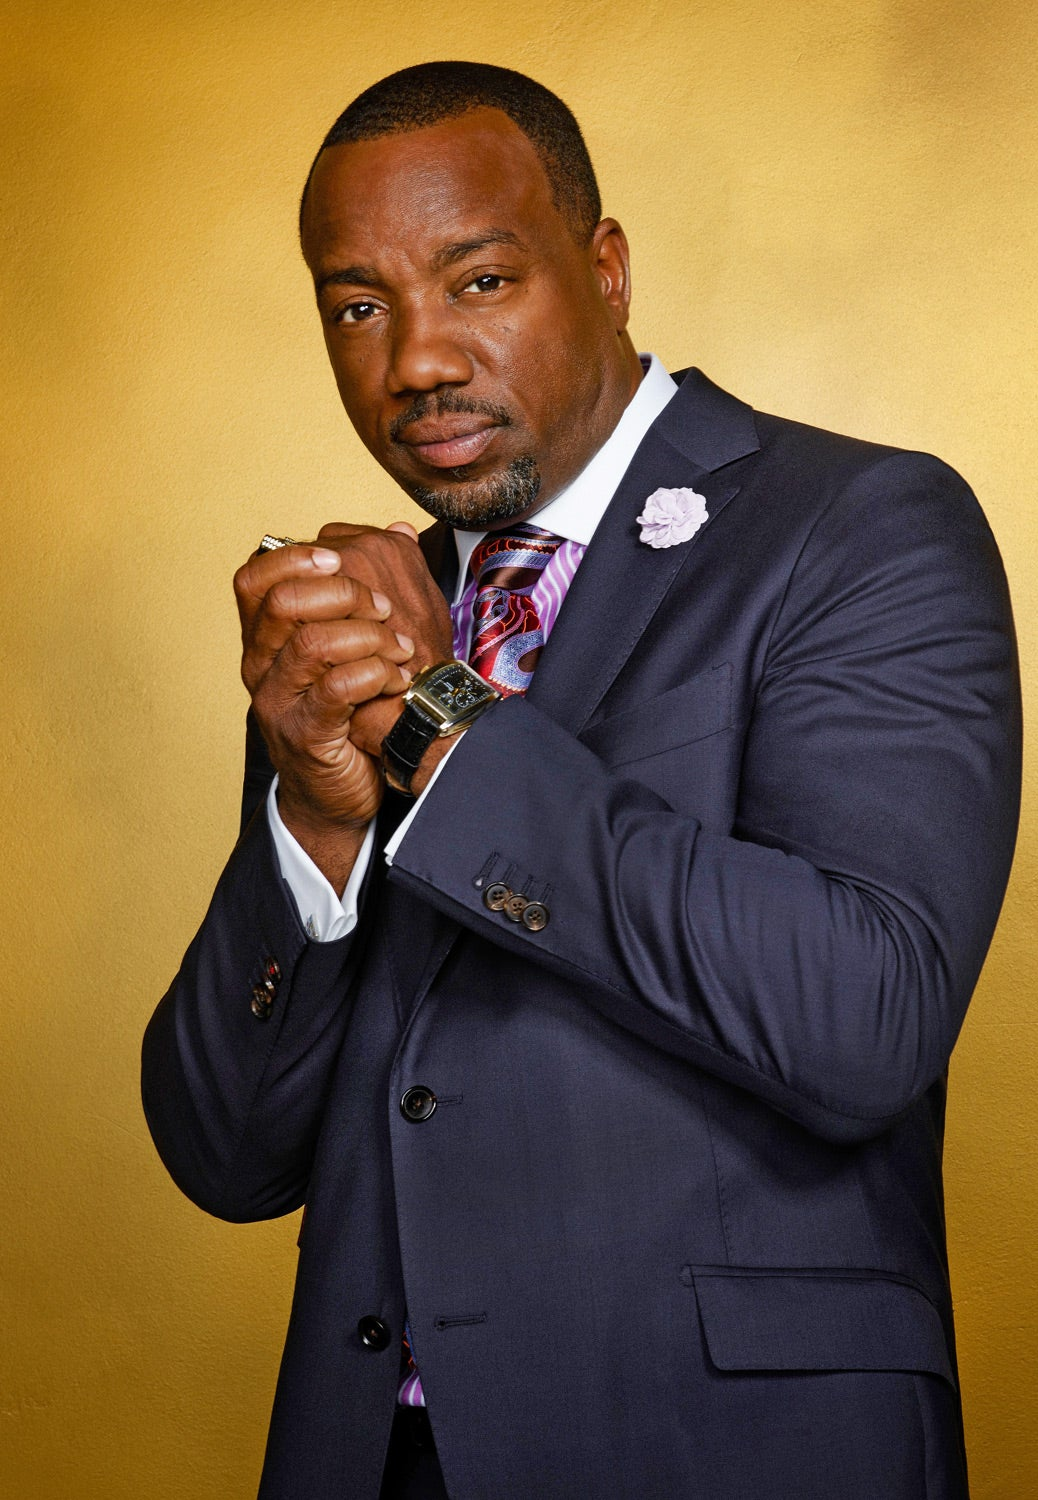 Malik Yoba on 'Empire' Character Vernon: 'He's No Yes-Man' (And More Juicy Tidbits)